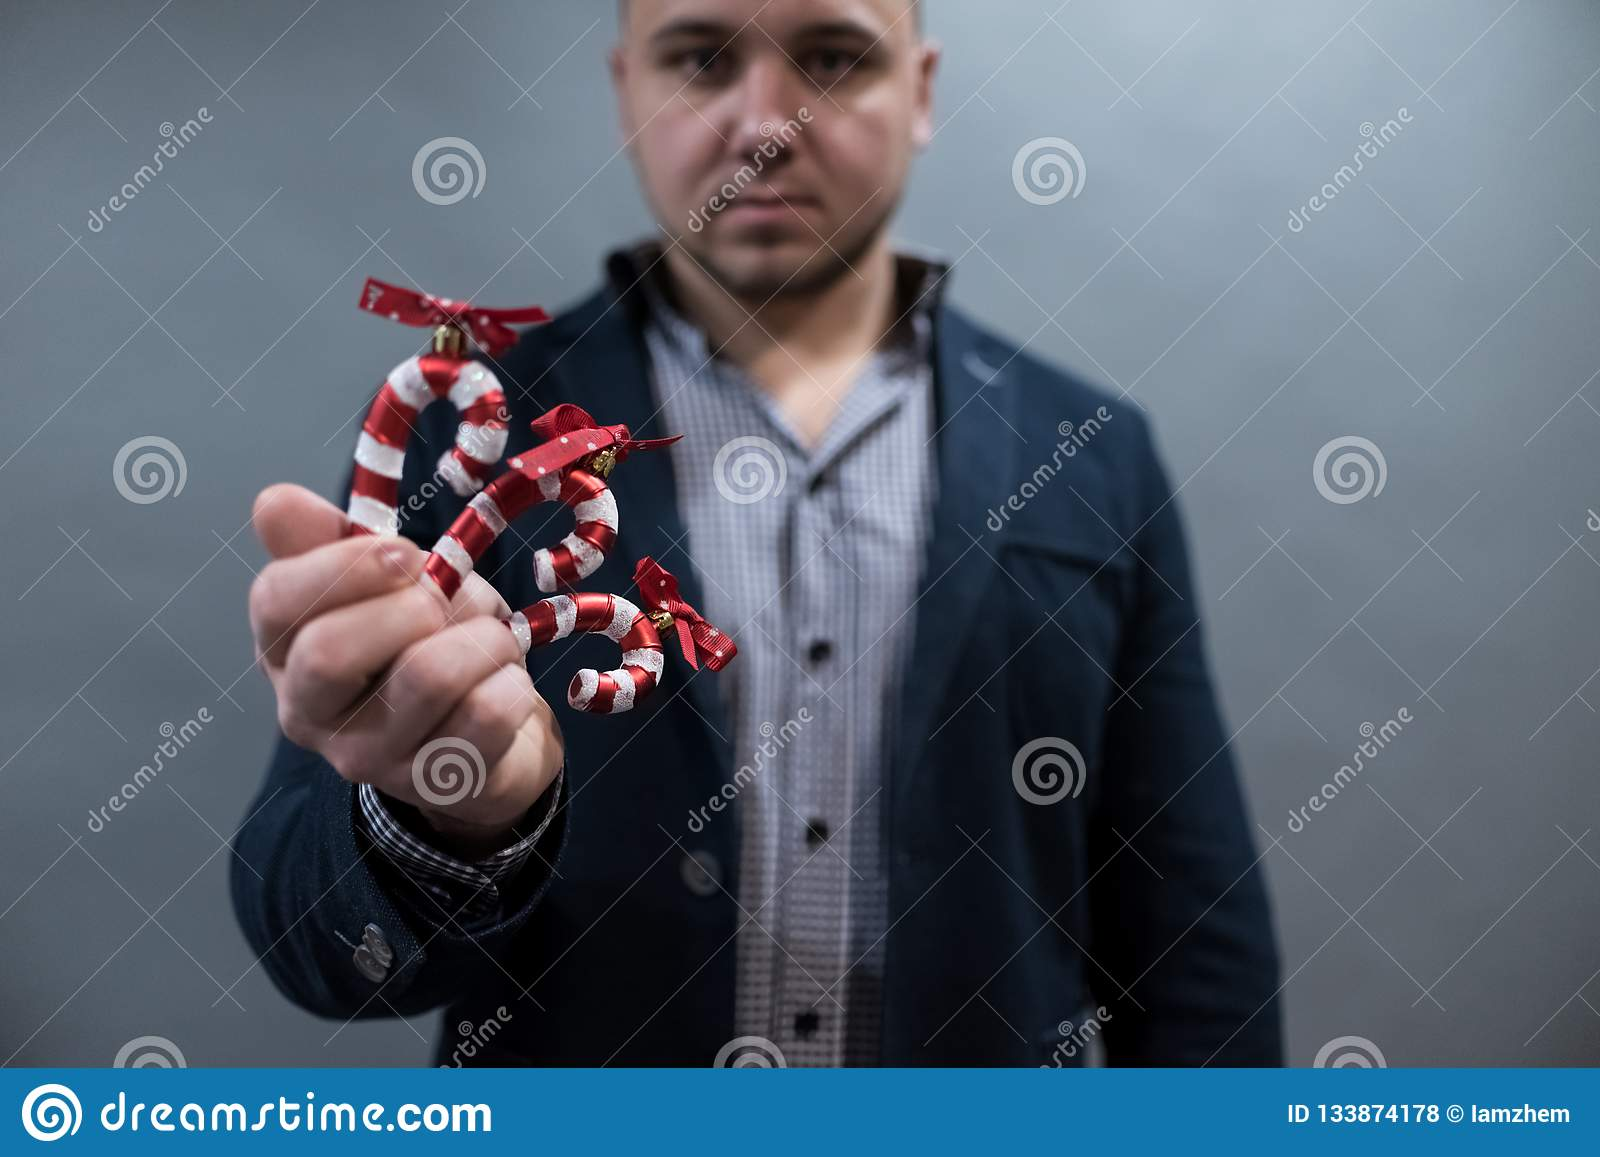 The man is holding a Christmas toy candy cane